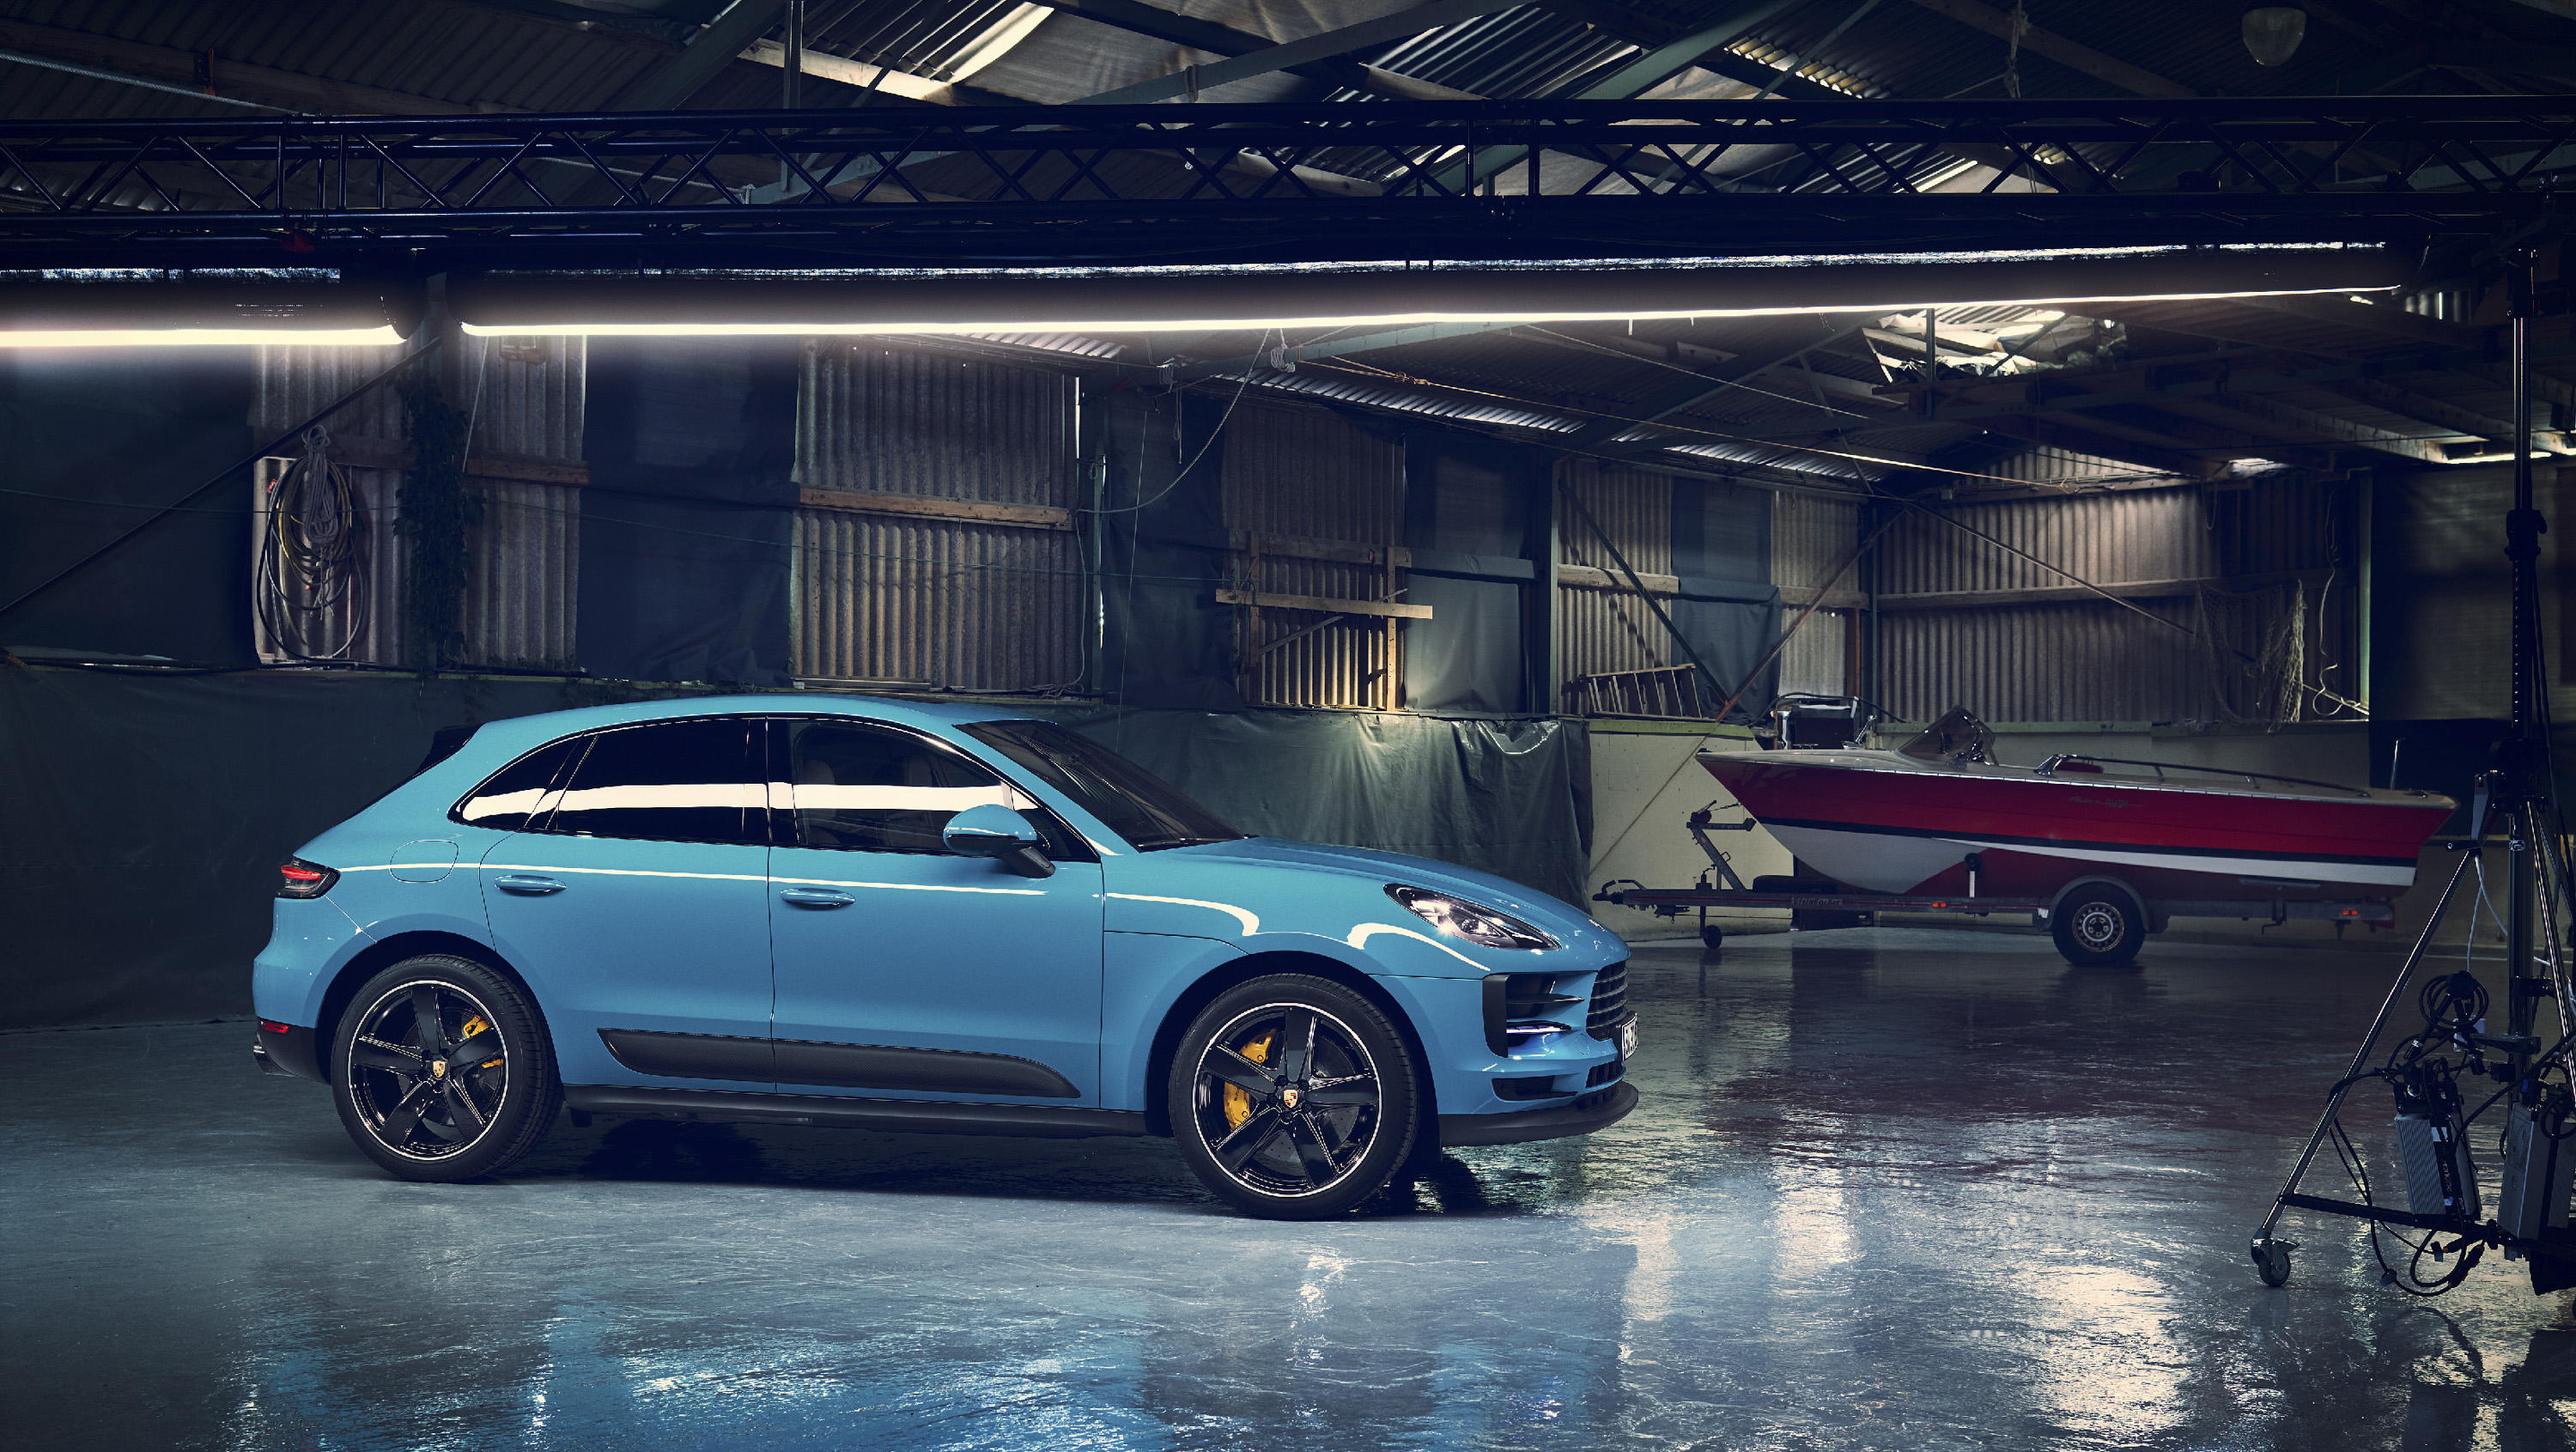 Led Lights For Cars >> Wallpaper Of The Day: 2019 Porsche Macan | Top Speed